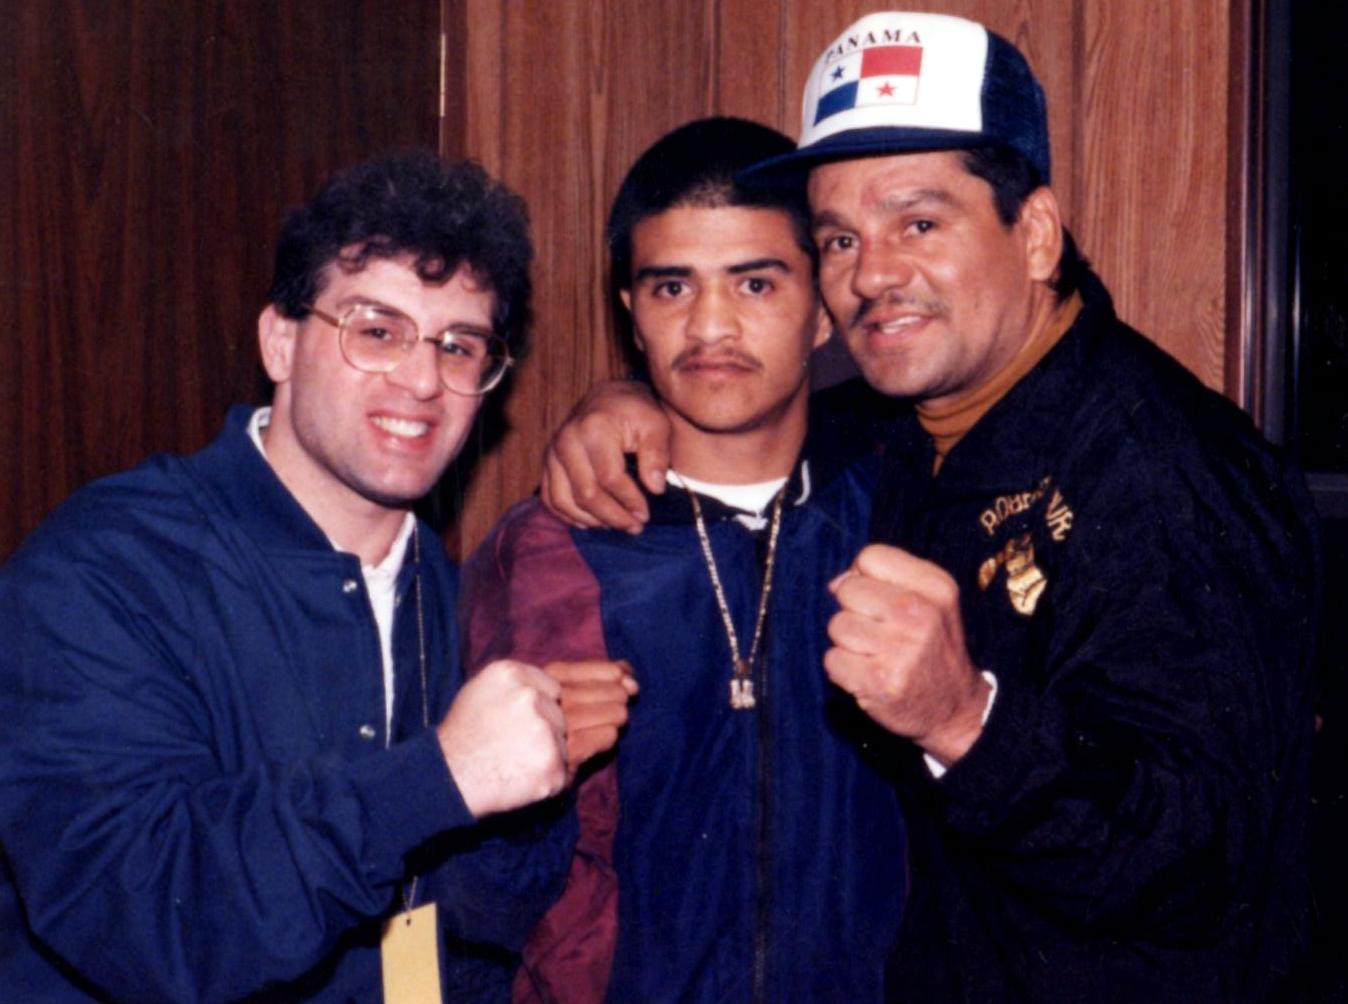 John Rinaldi with Two-Time cChampion Michael Carbajal and Four-Time Champion Roberto Duran *(PHOTO BY ALEX RINALDI)